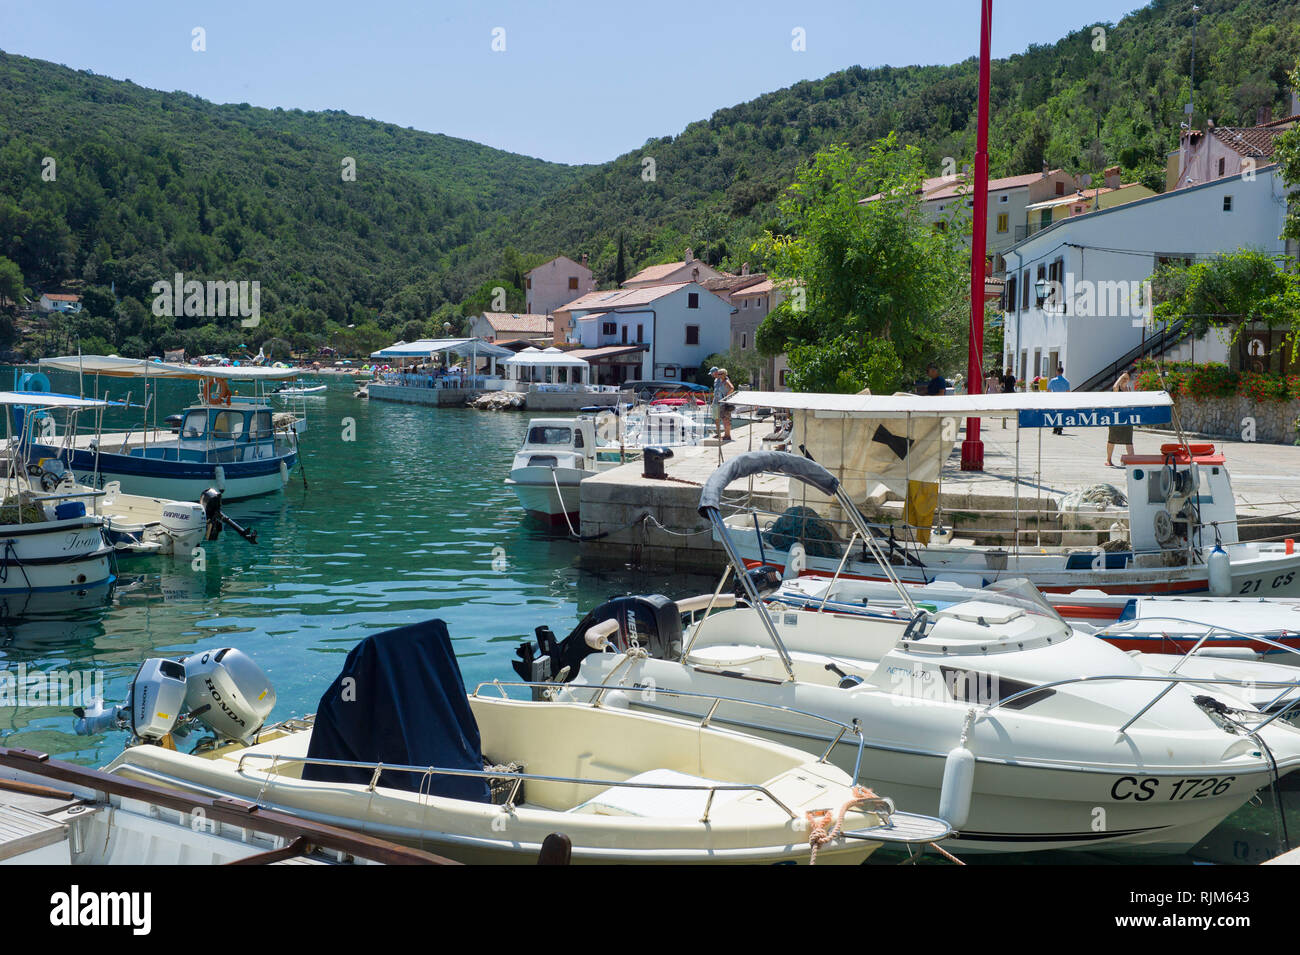 Boats in Valun harbour in the town of Valun,Cres Croatia Stock Photo